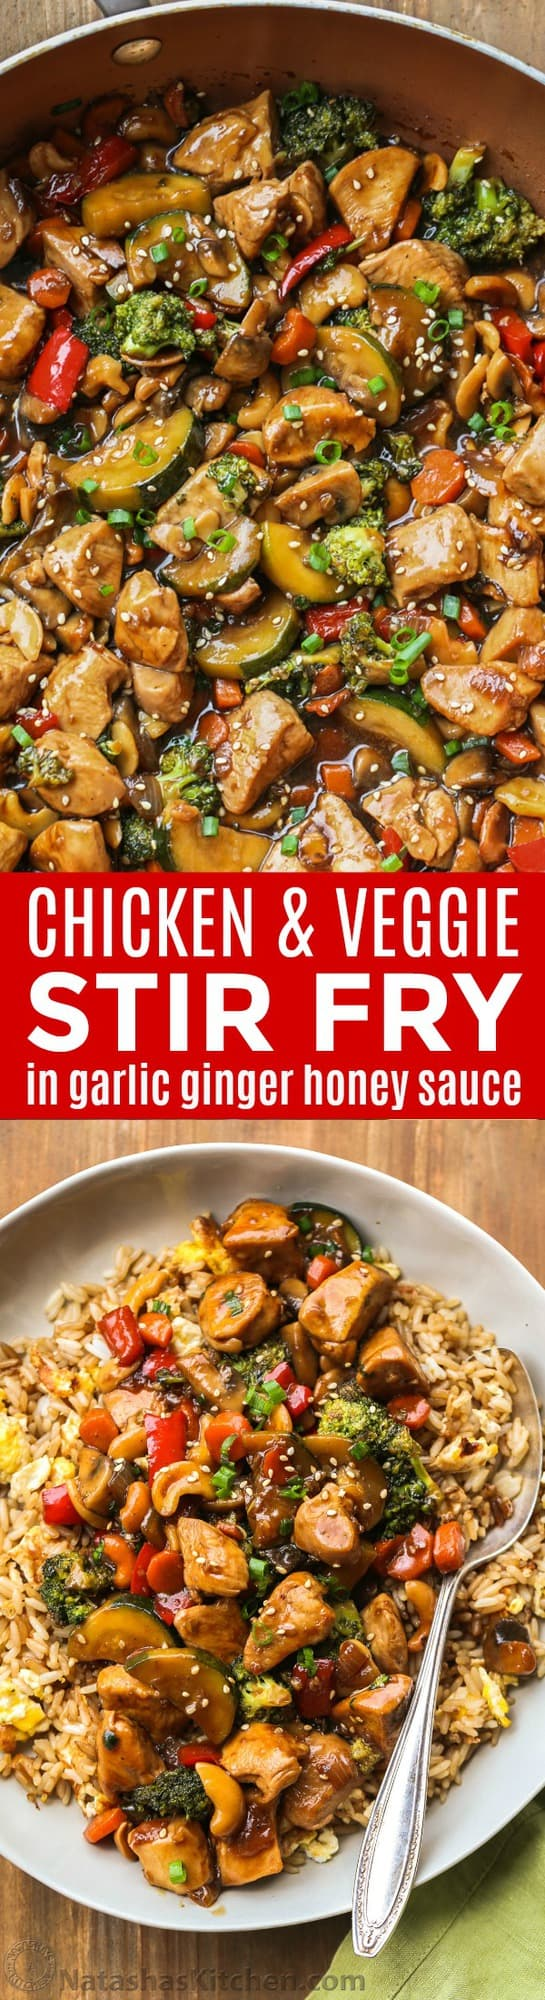 A 30-minute chicken stir fry recipe with an easy ginger honey soy sauce. Perfect easy dinner your whole family will enjoy. | natashaskitchen.com